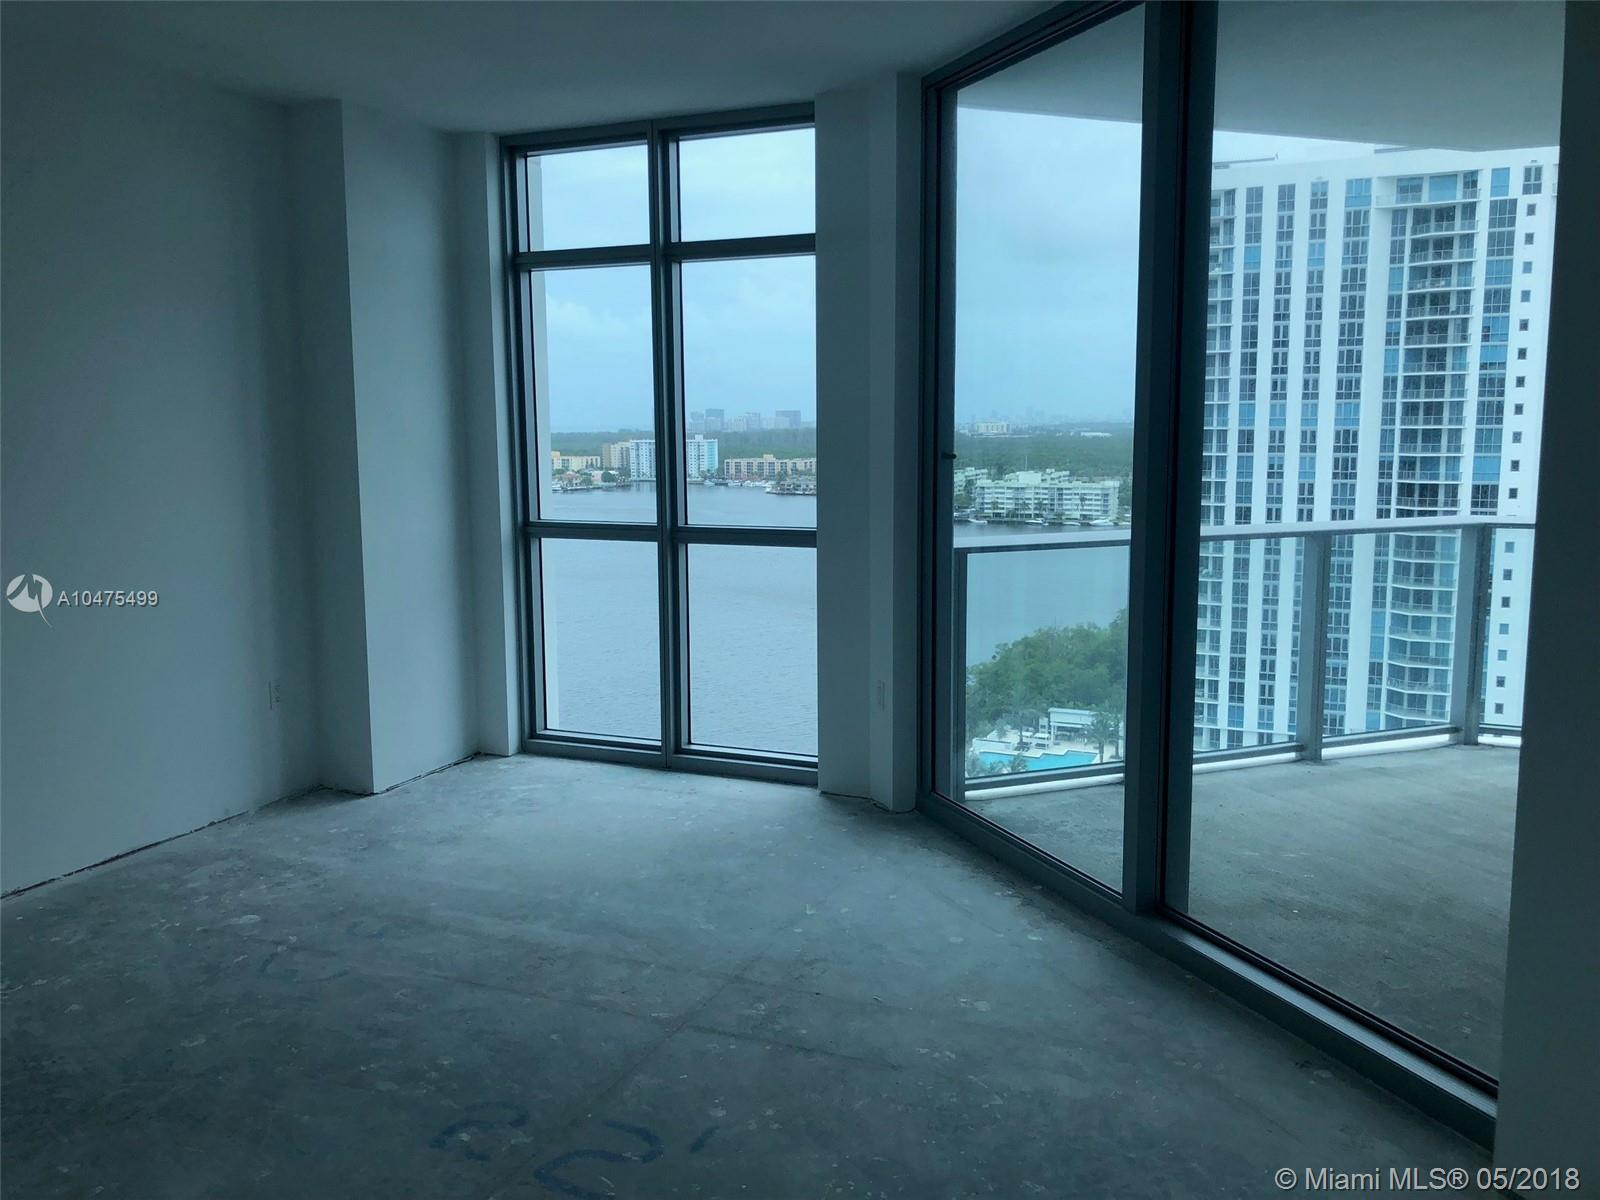 Photo of Marina Palms Appartamento 1707